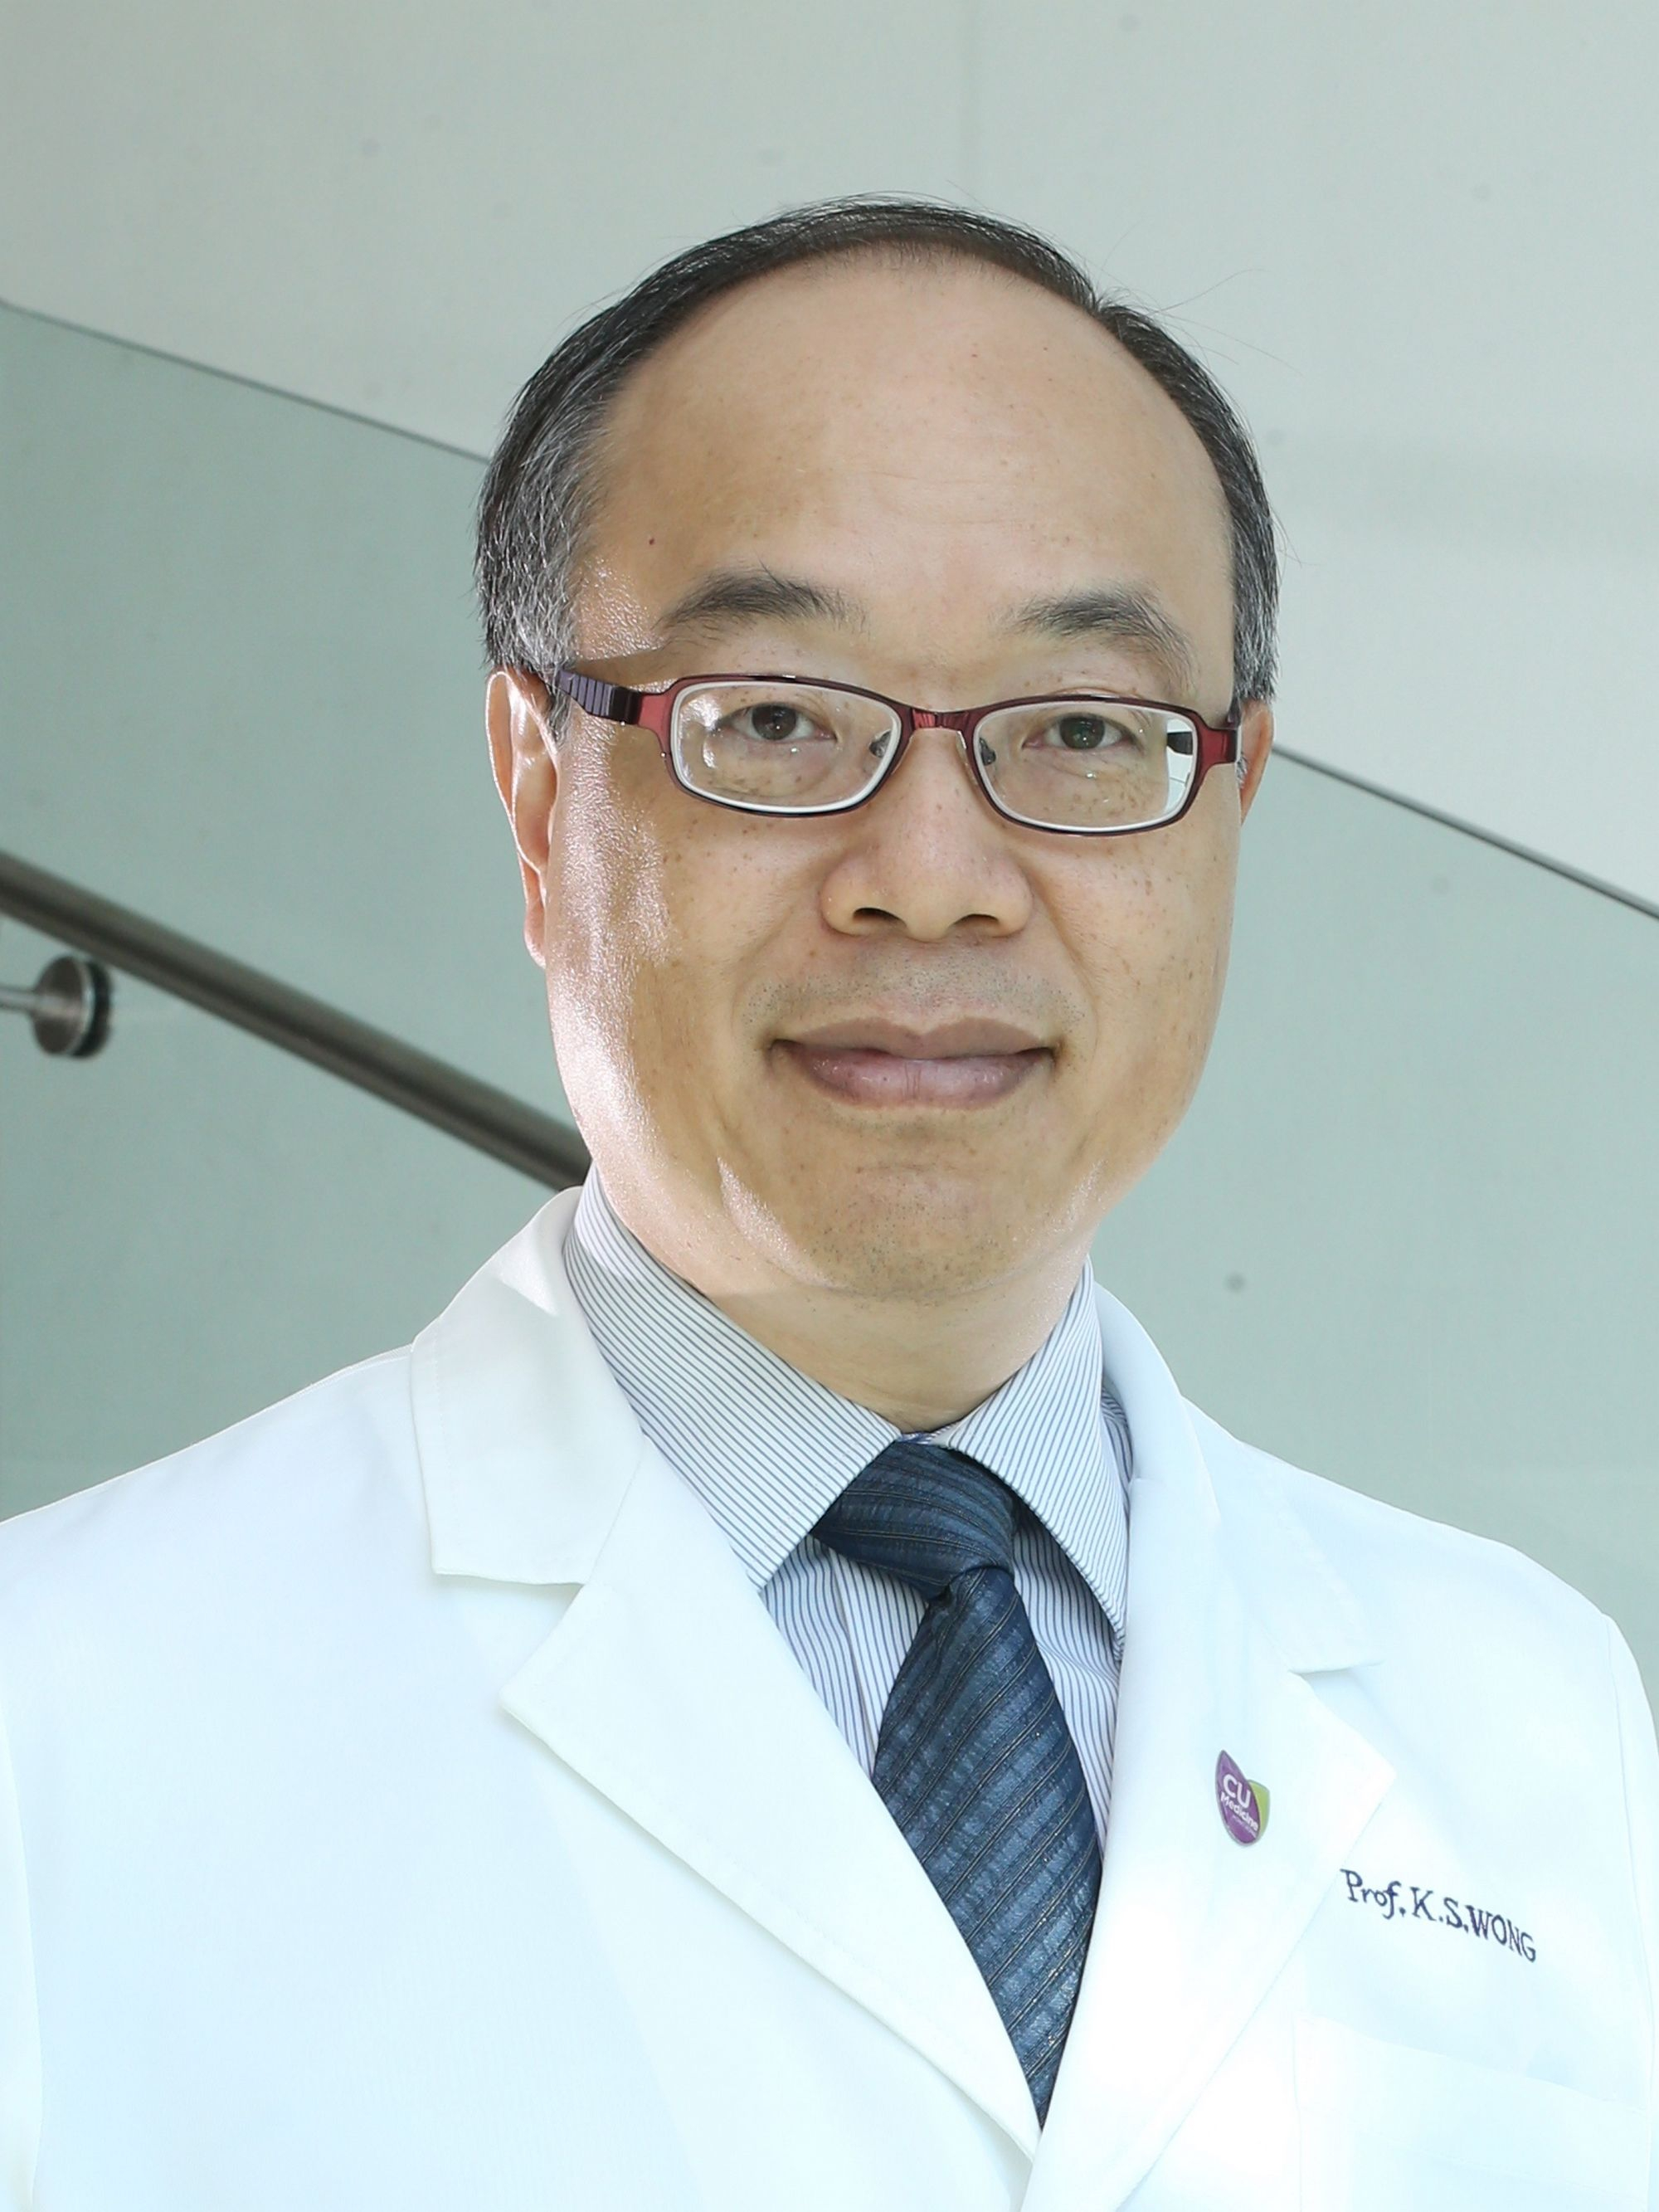 Prof. Lawrence WONG, Clinical Professor (honorary) of the Department of Medicine and Therapeutics at the Faculty of Medicine at CUHK, is very encouraged about the recipient of the State Scientific and Technological Progress Award second-class award. He is also confident that the development of stroke therapy will continue to improve through researches.